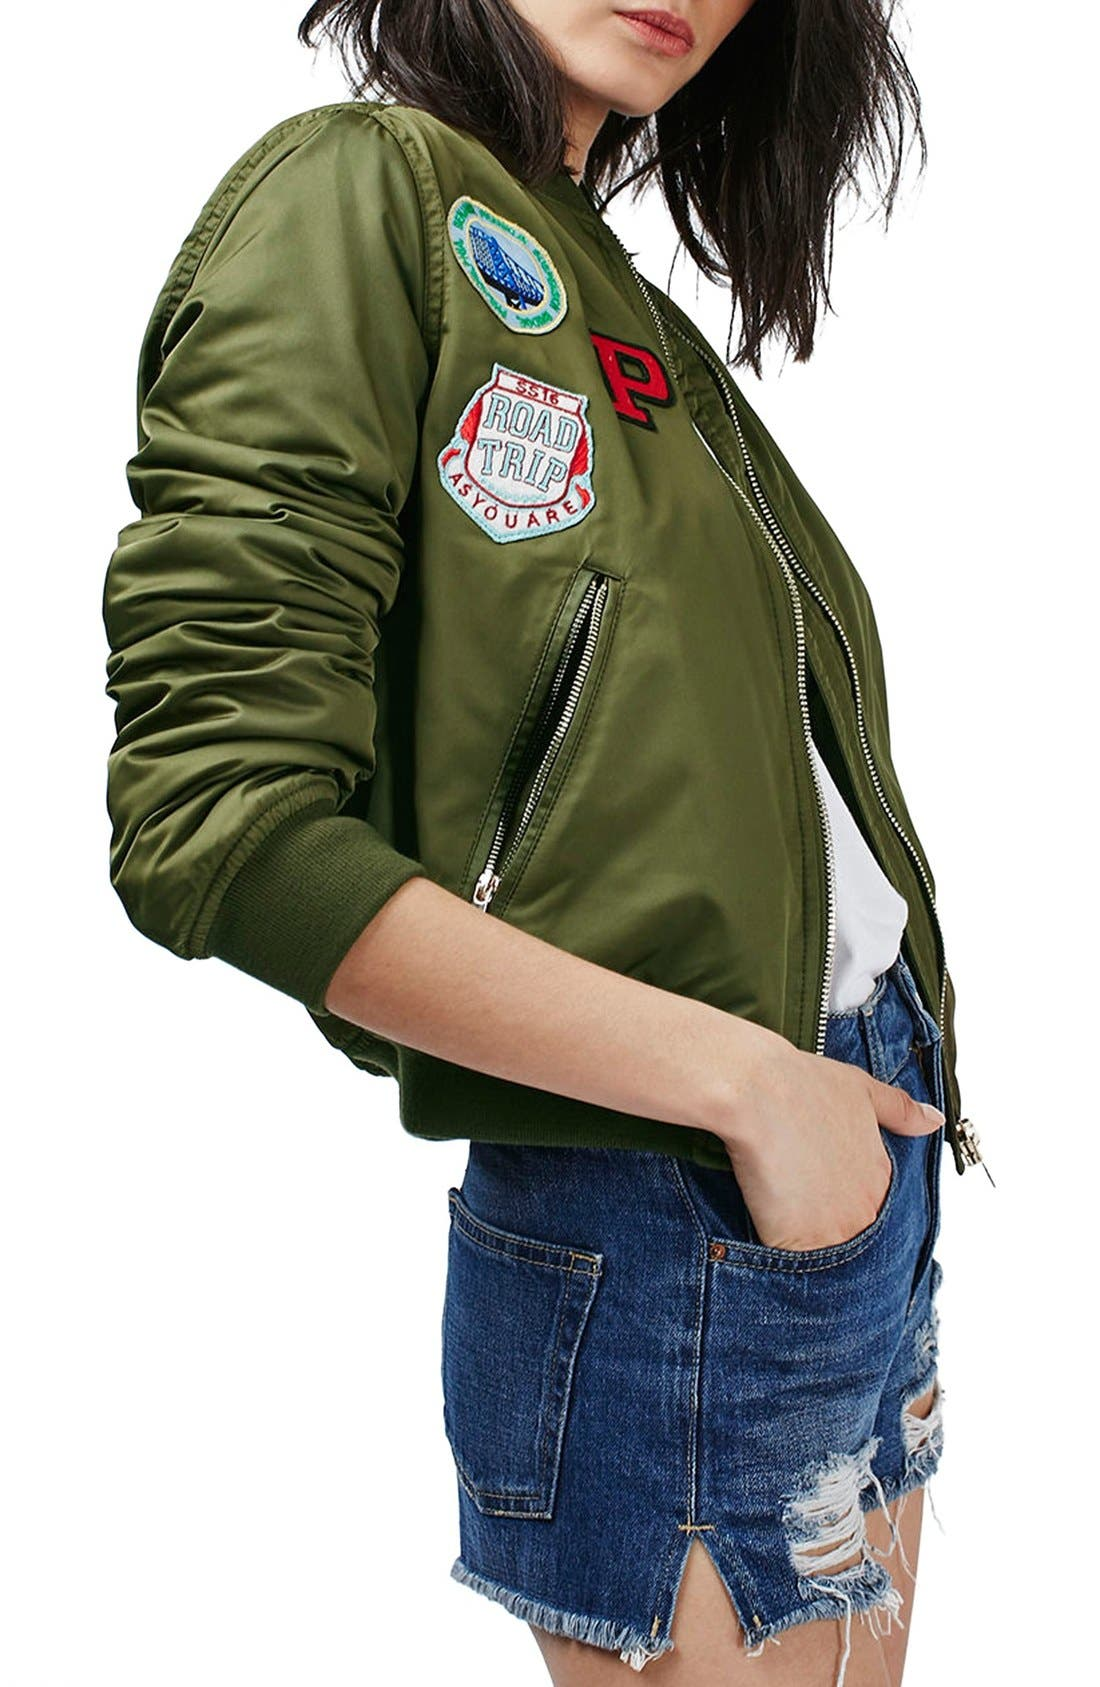 TOPSHOP, 'Bruce' Patch Detail MA1 Bomber Jacket, Main thumbnail 1, color, 300